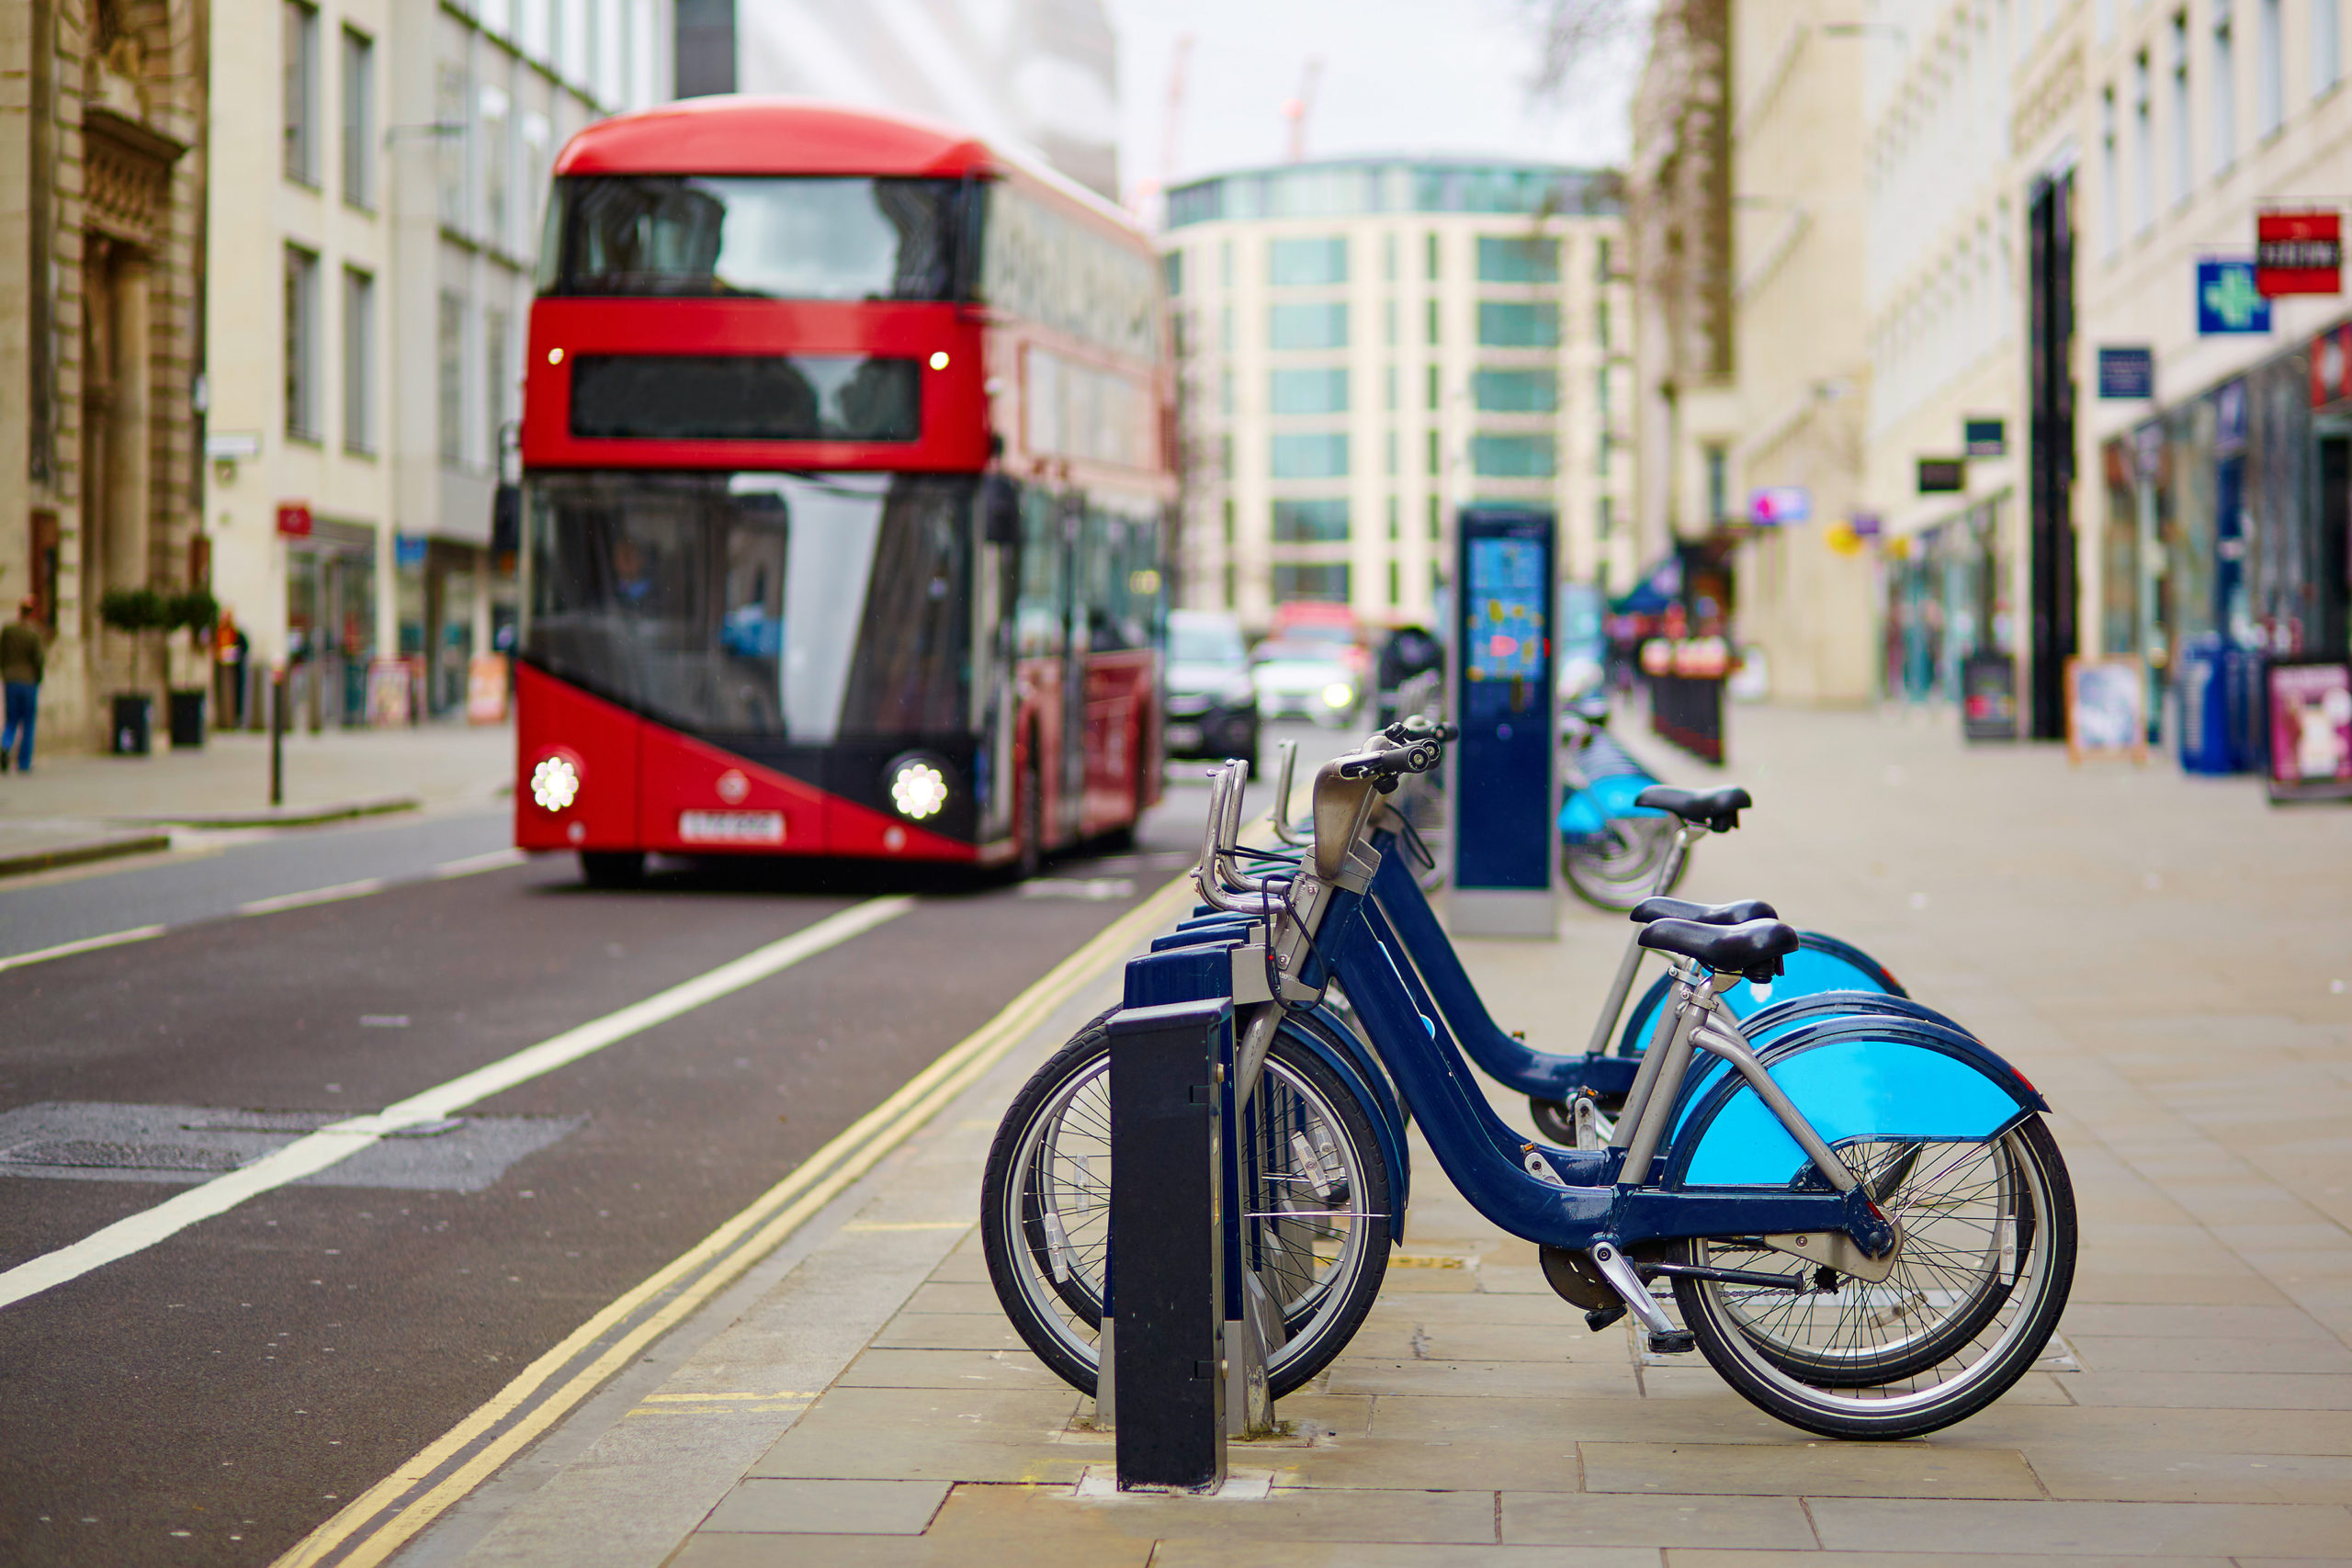 London Bus with city bikes